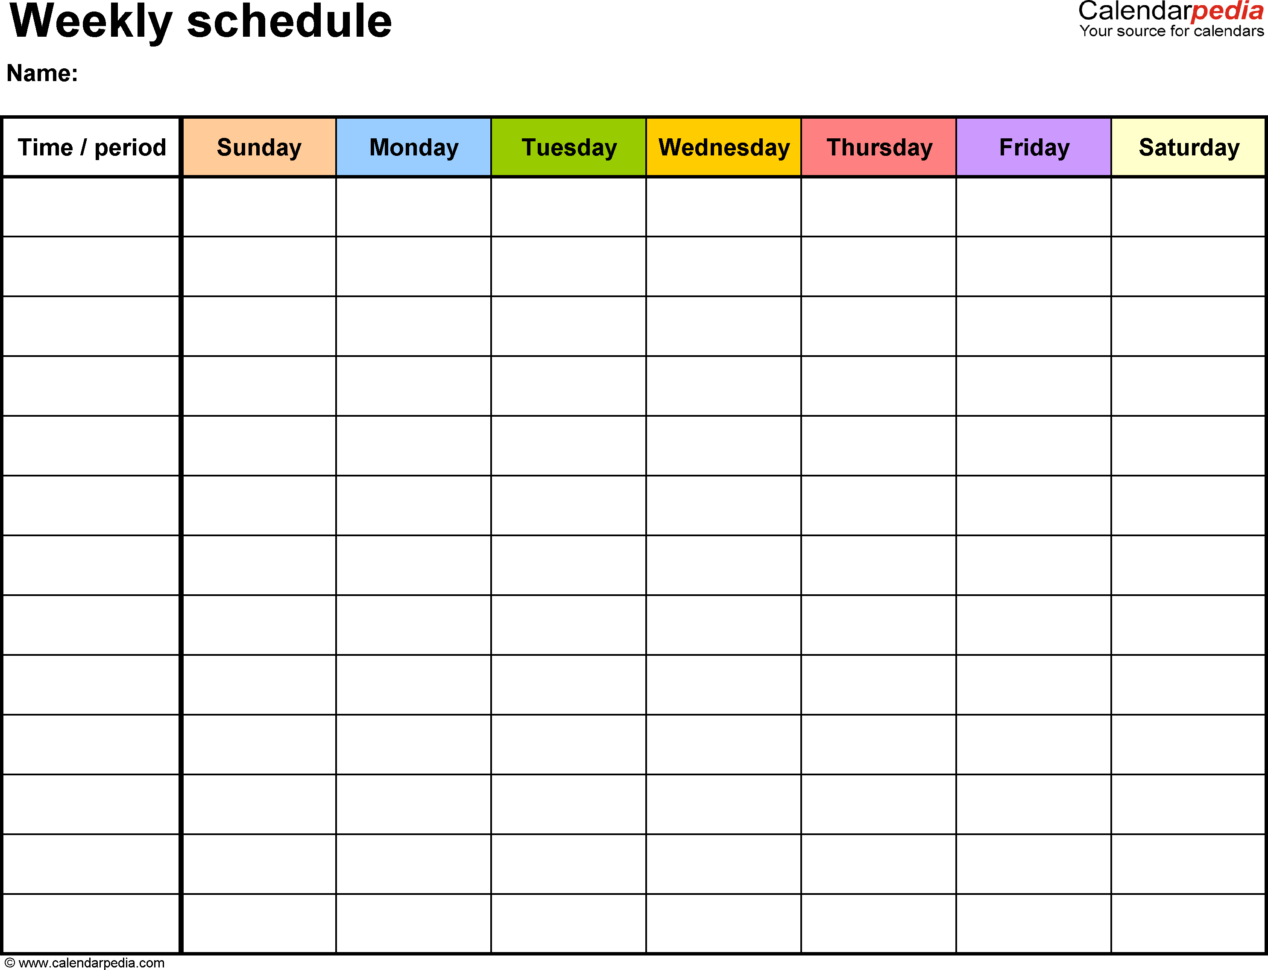 Spreadsheet Calendar Template With Free Weekly Schedule Templates For Excel  18 Templates